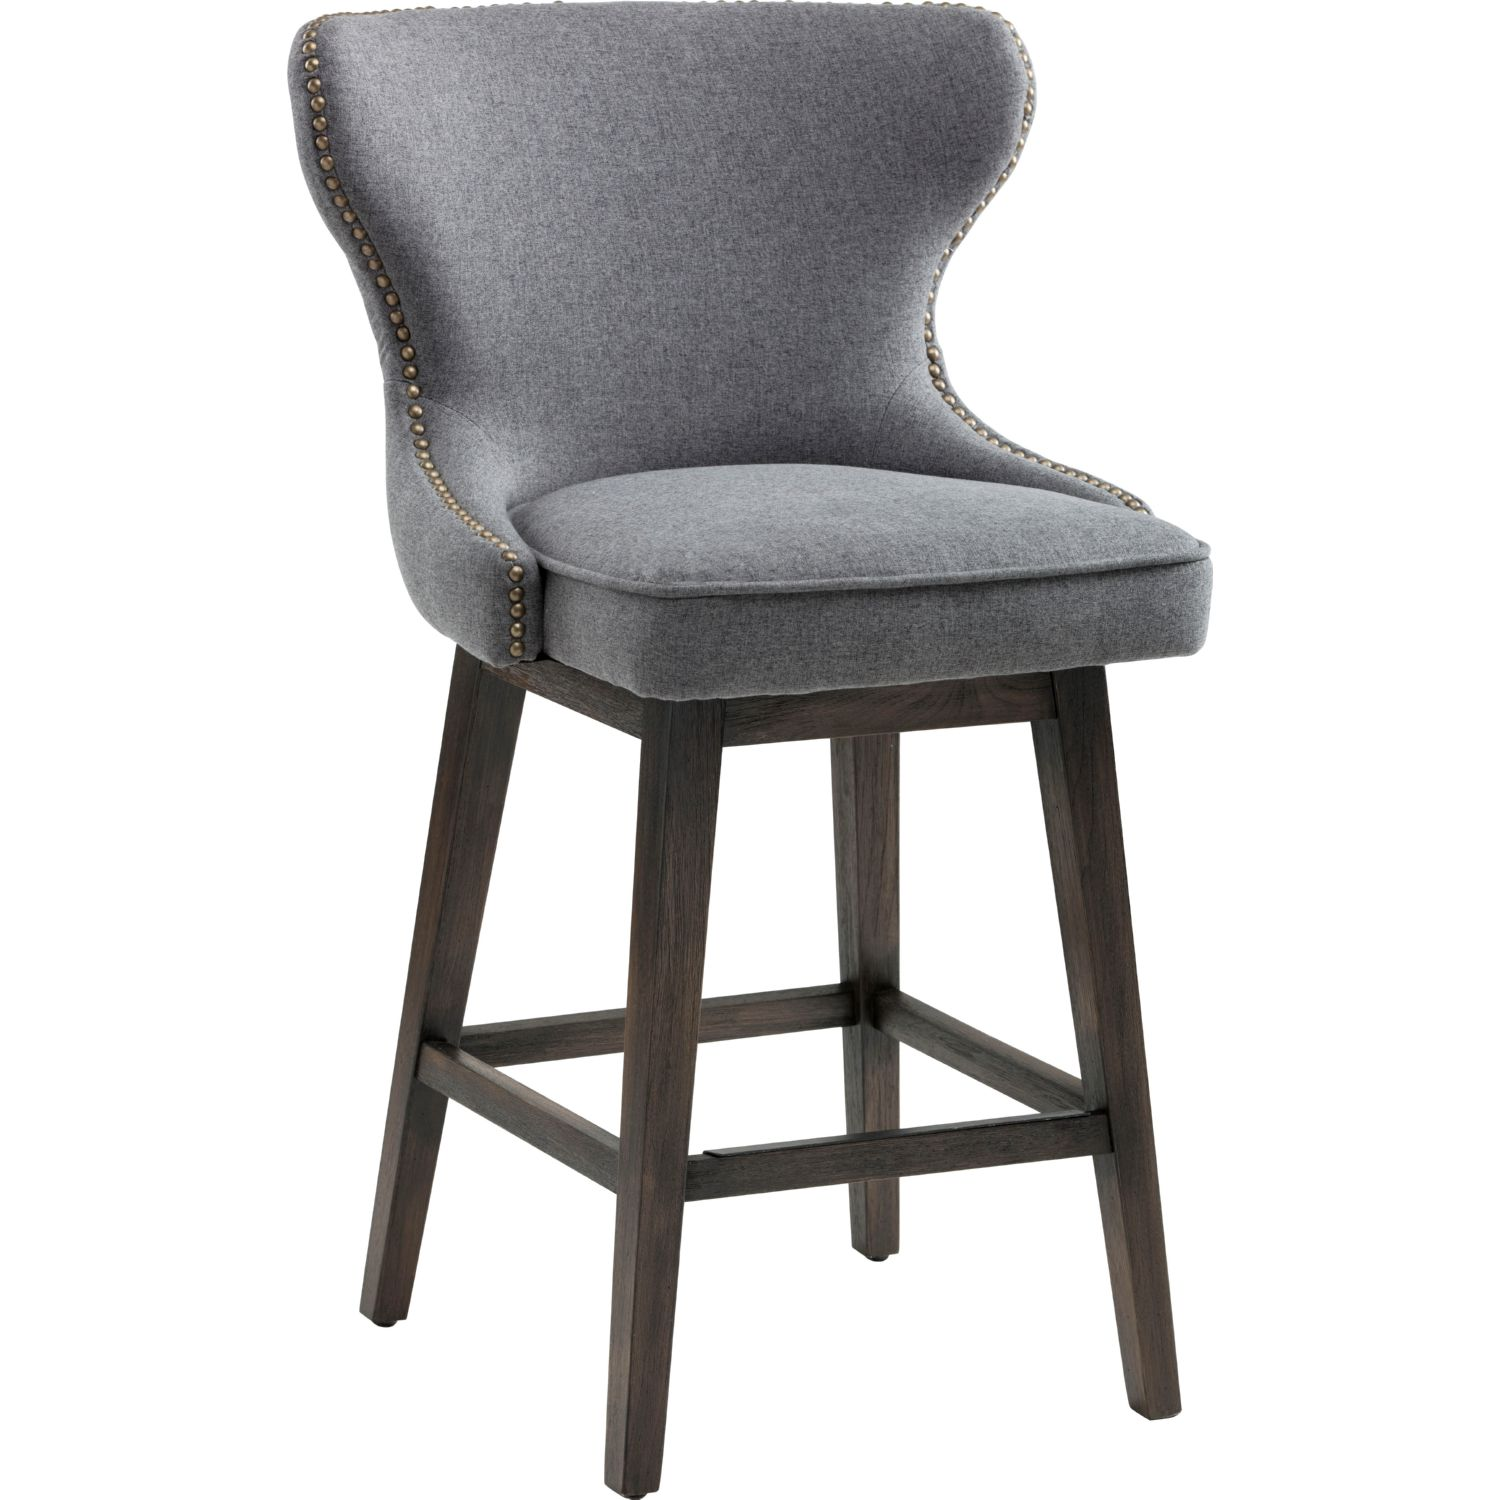 Sunpan 101153 Ariana Swivel Counter Height Stool In Tufted